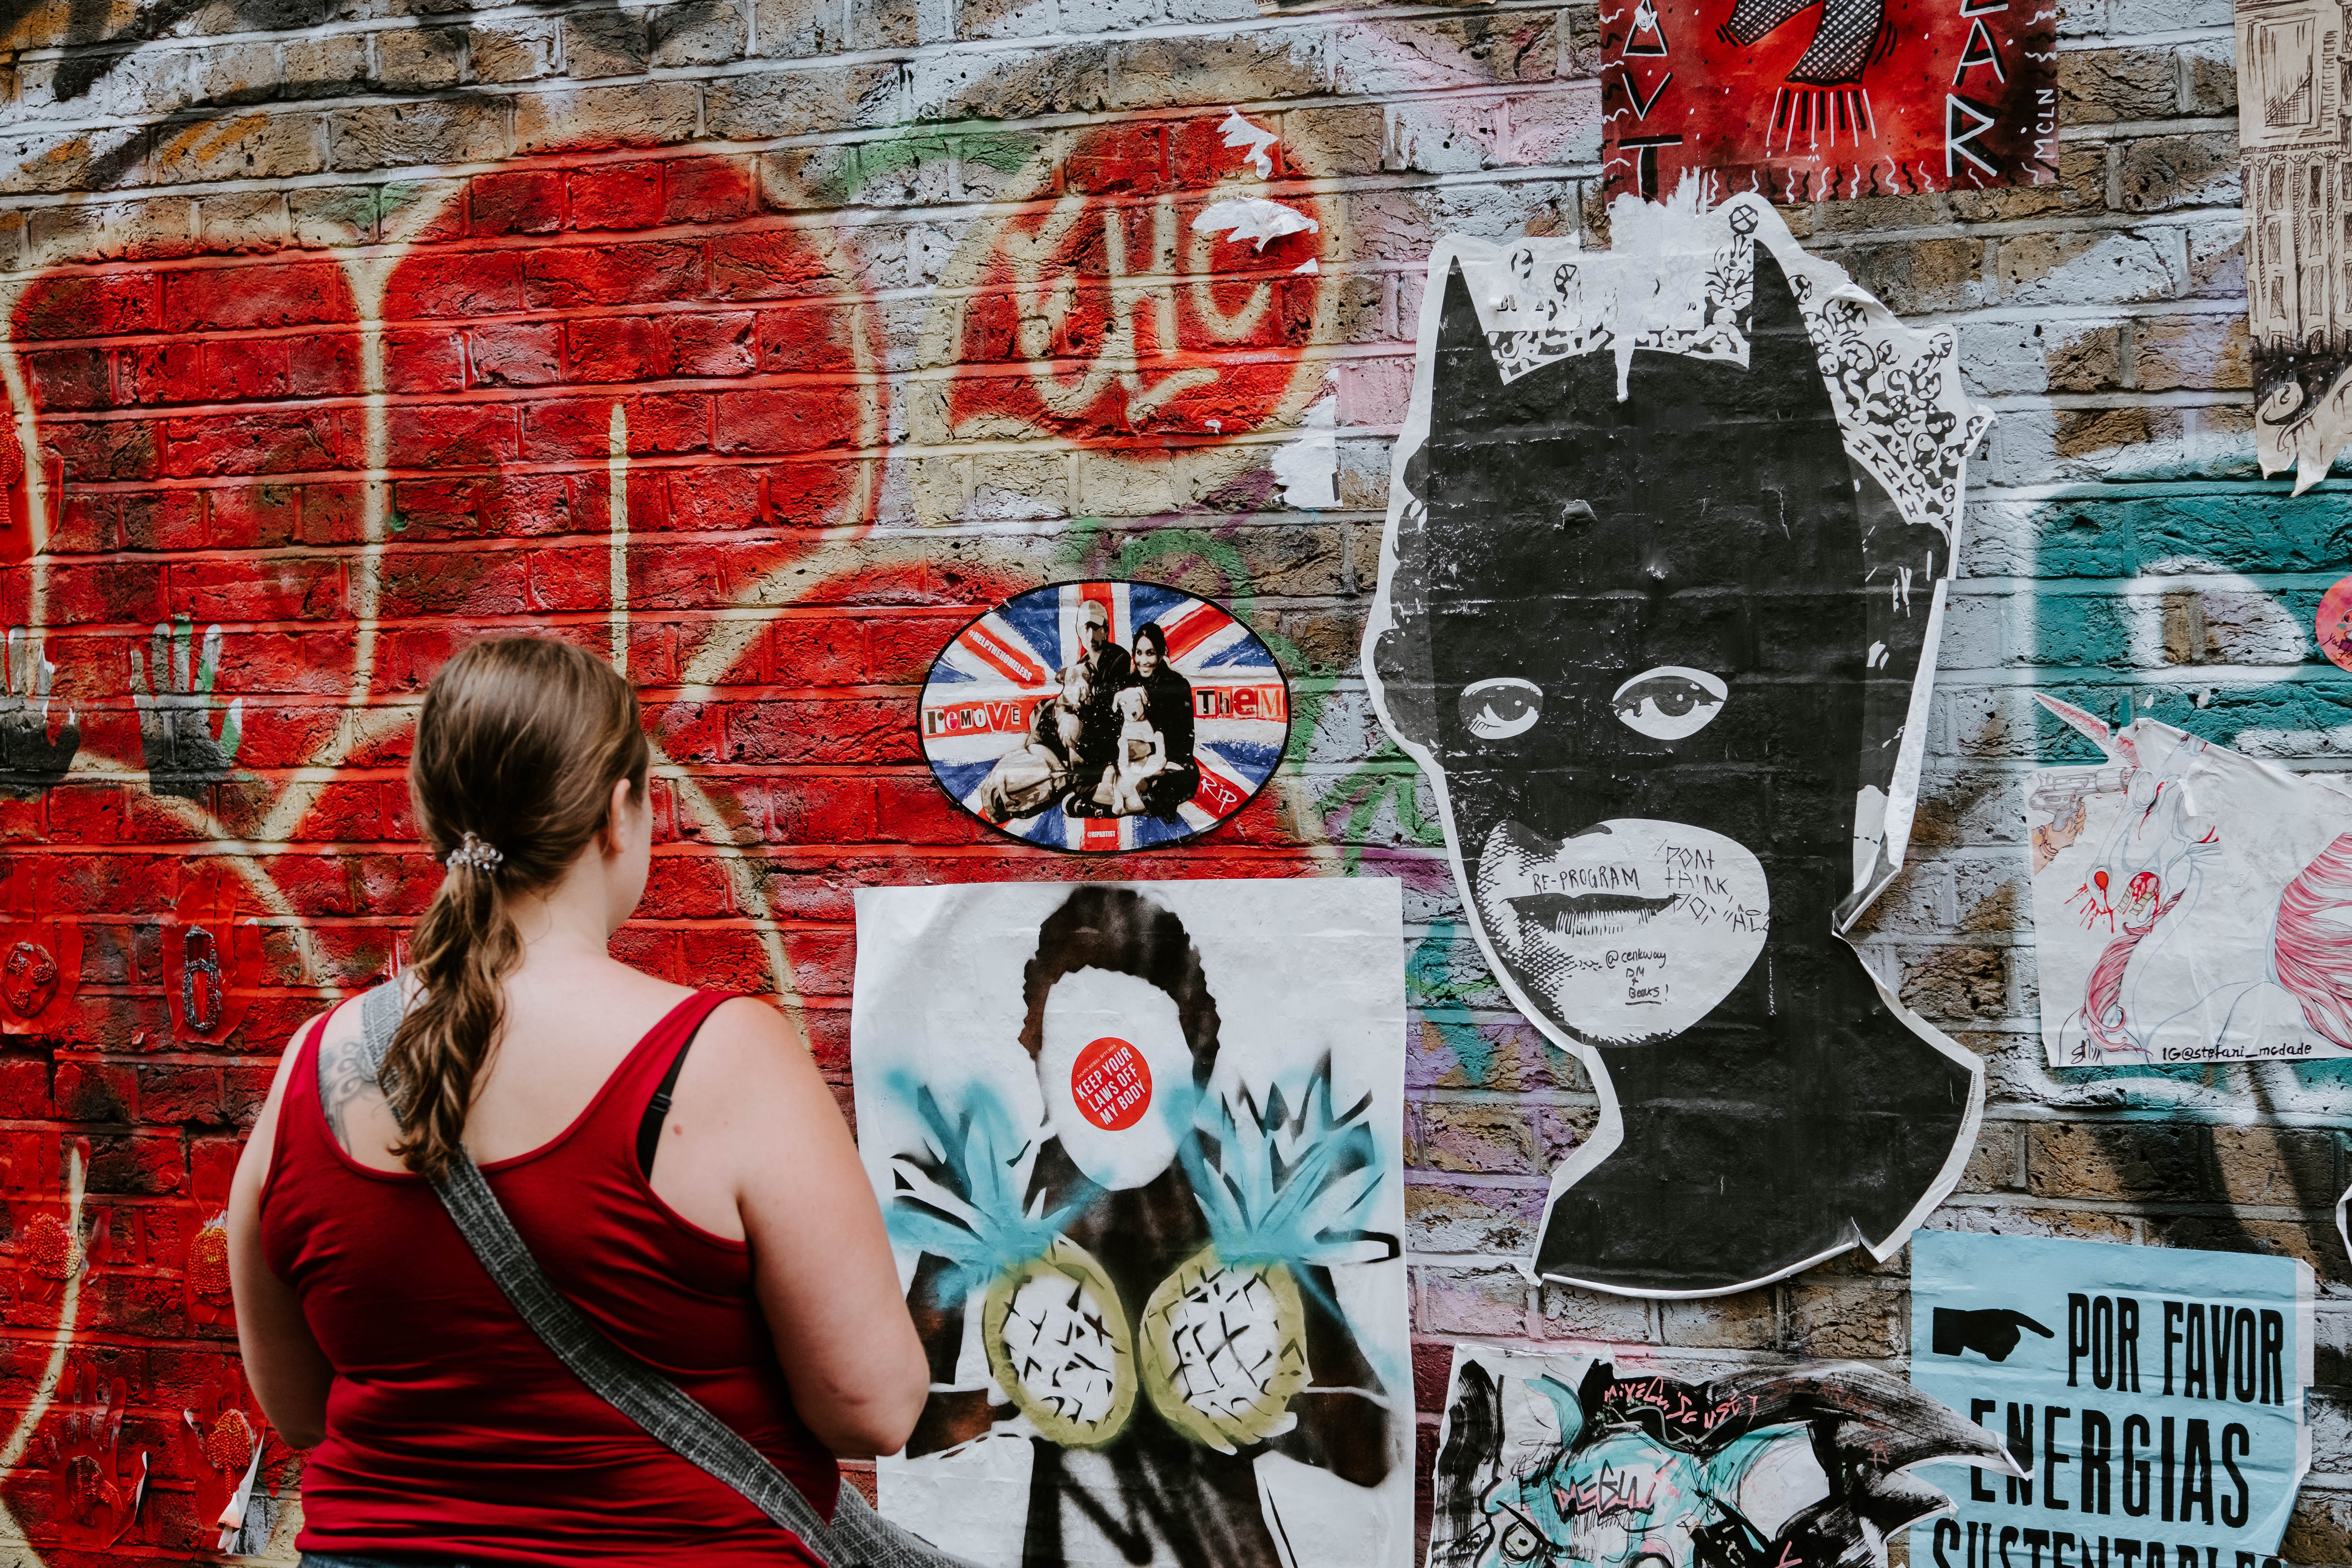 woman looking at batman graffiti wall art